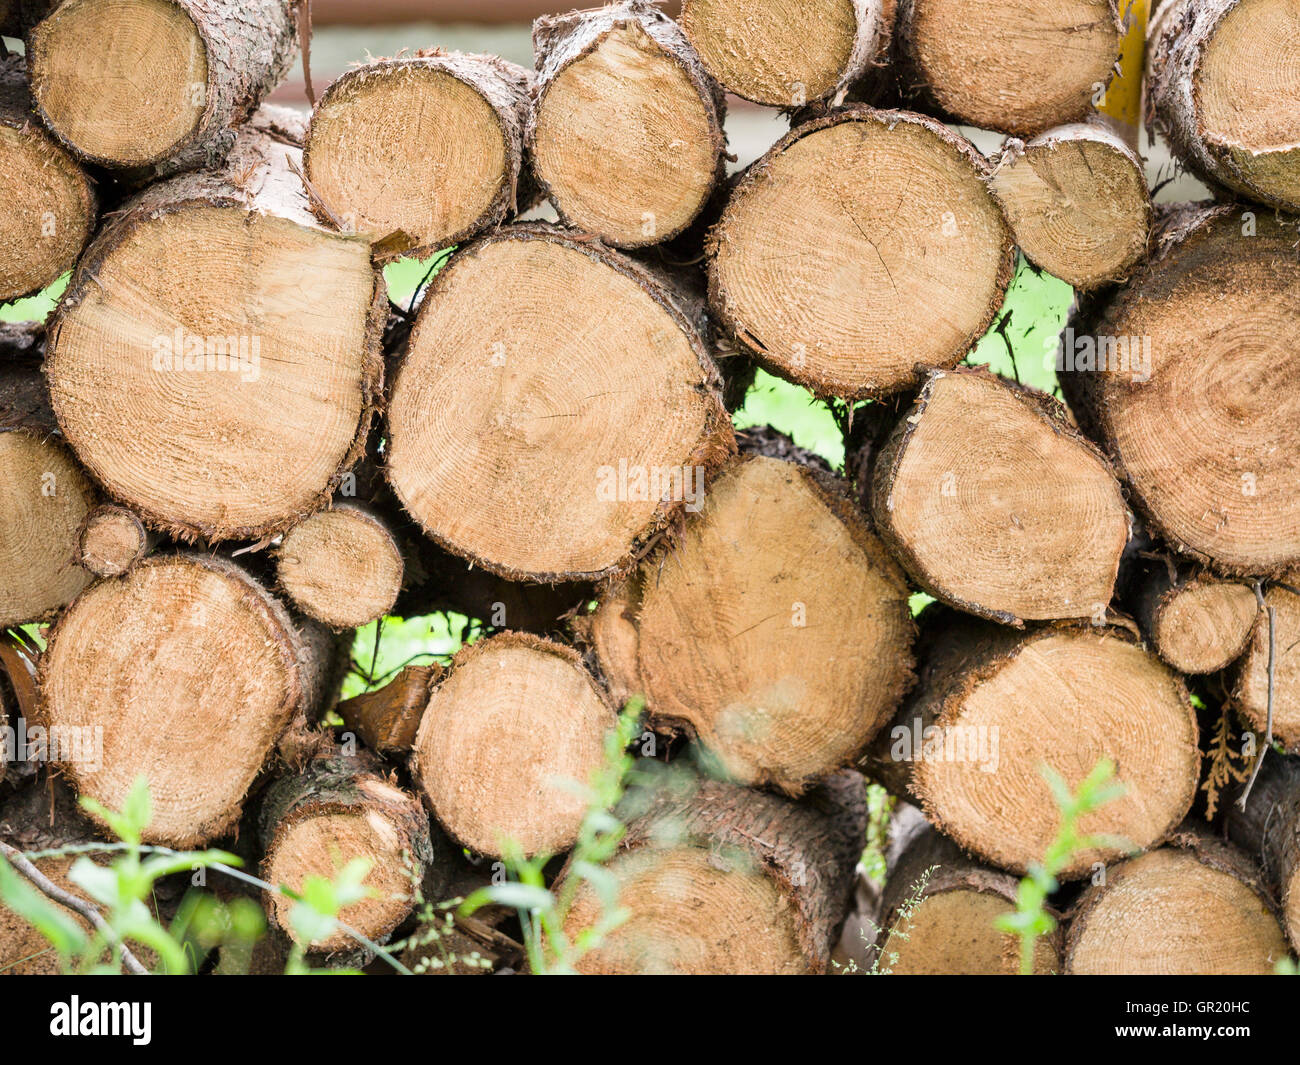 Freshly cut Firewood piled high. Logs from a freshly cut tree piled up for drying. - Stock Image